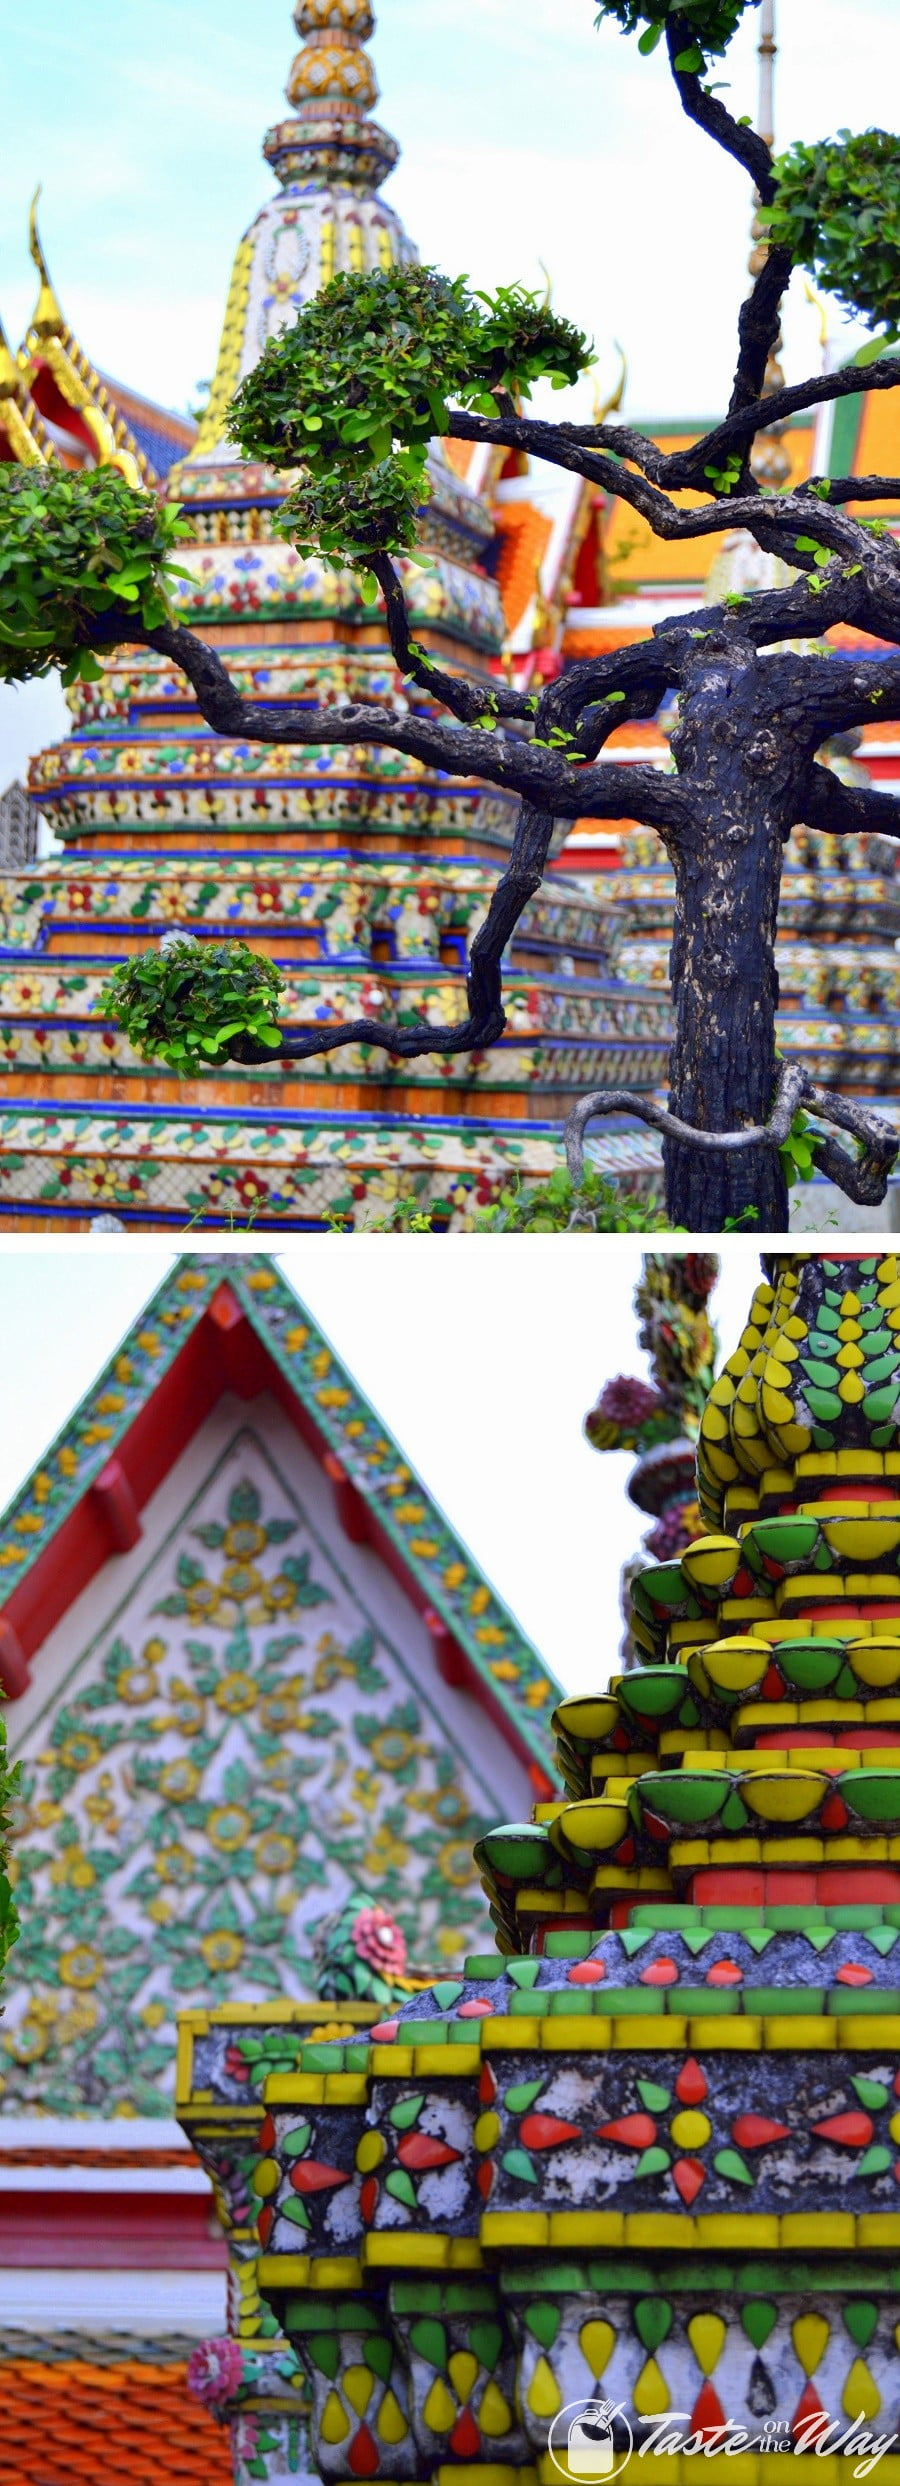 Top 10 Best Things to Do in Bangkok - Visiting Wat Pho is just one of the top #thingstodo in #Bangkok, #Thailand. Check out for more! #travel #photography @tasteontheway